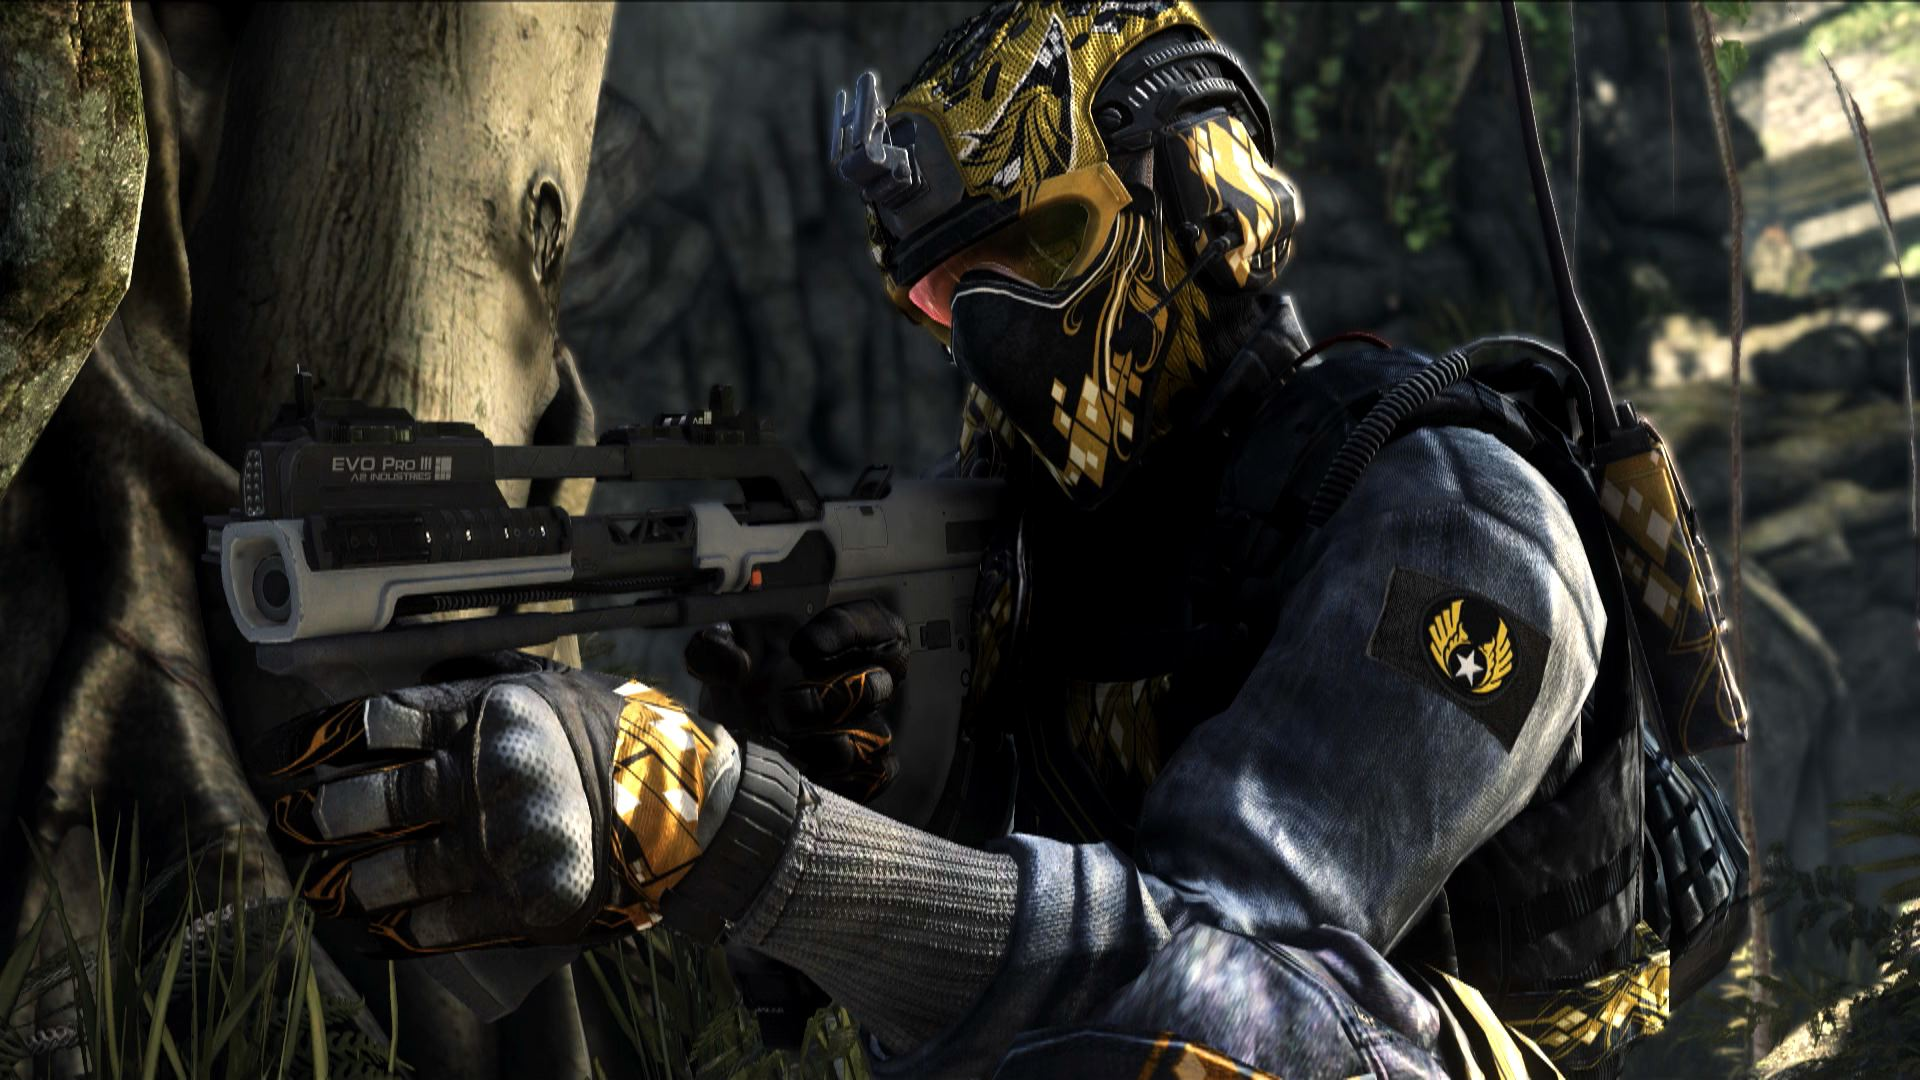 call of duty ghosts 2 pc download torrent